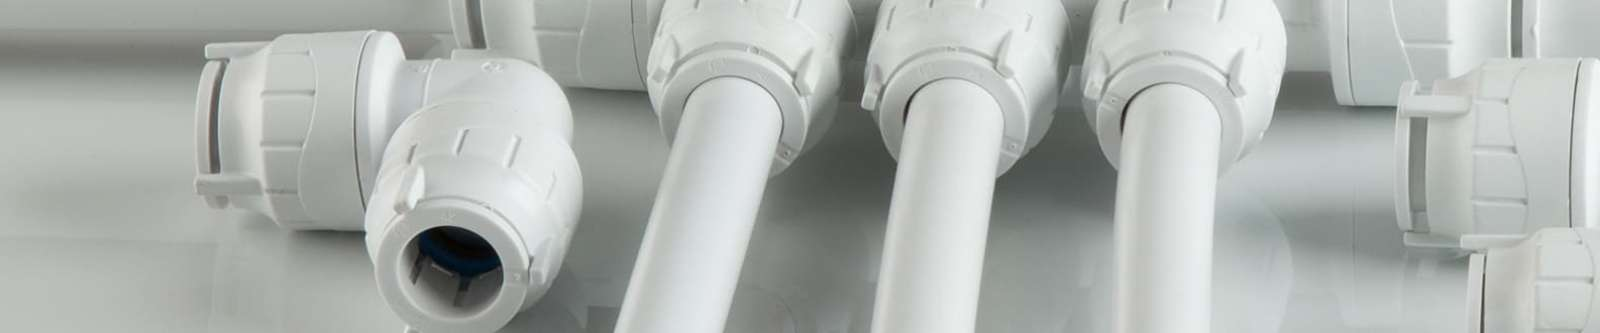 Plastic Plumbing Systems - Polyfit